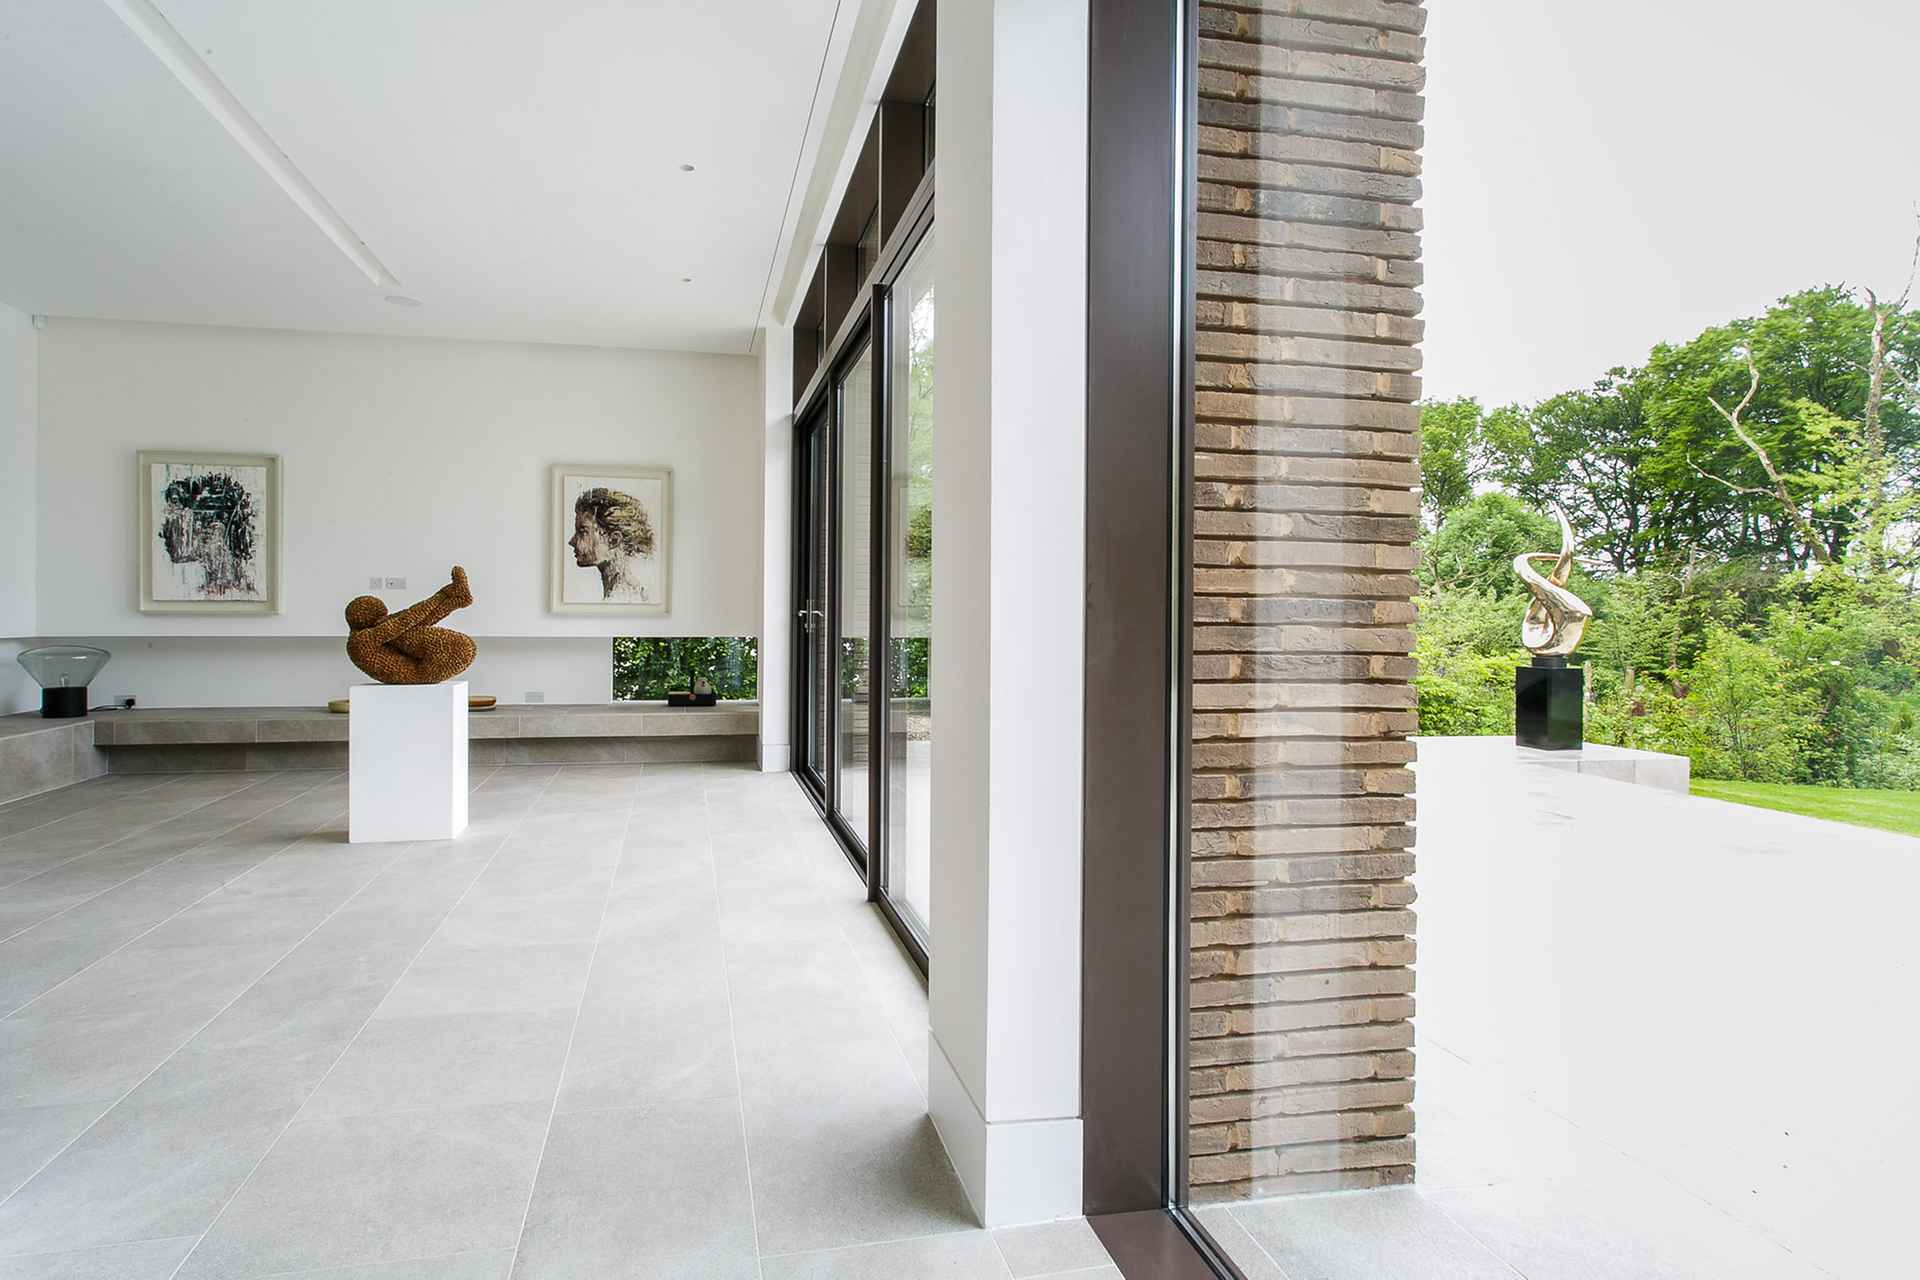 Transforming homes by Cheshire Home